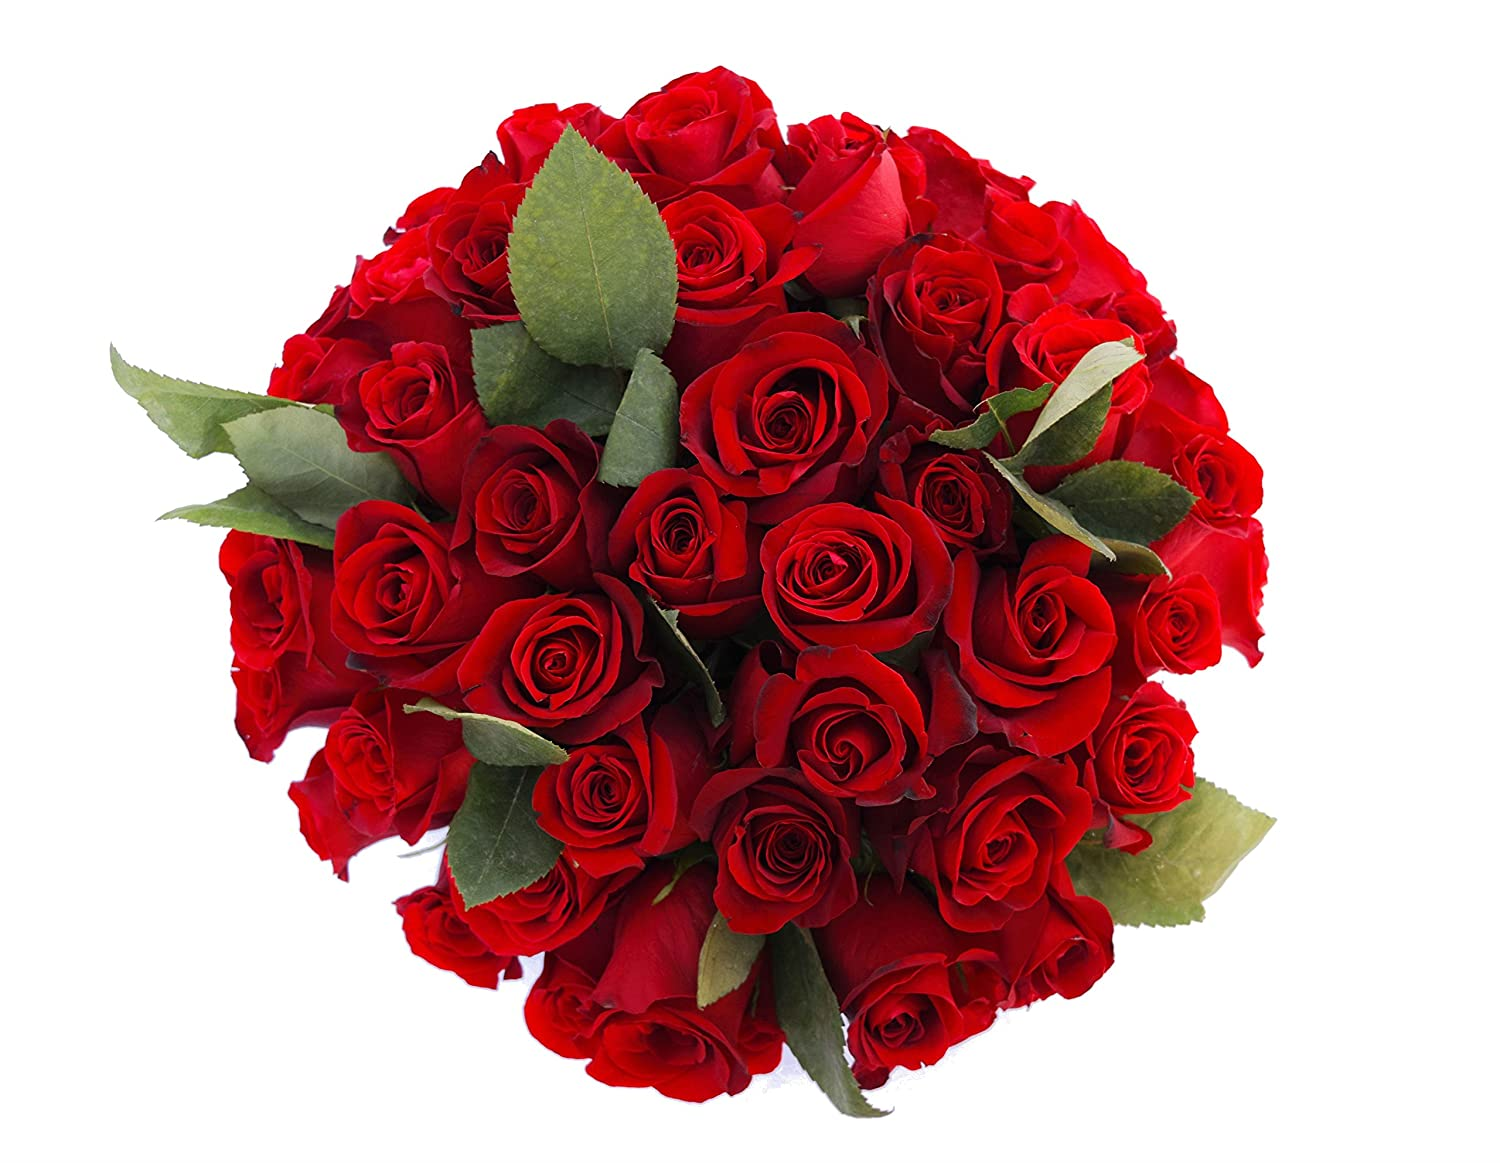 Amazon.com : 50 Farm Fresh Red Roses Bouquet By JustFreshRoses ...